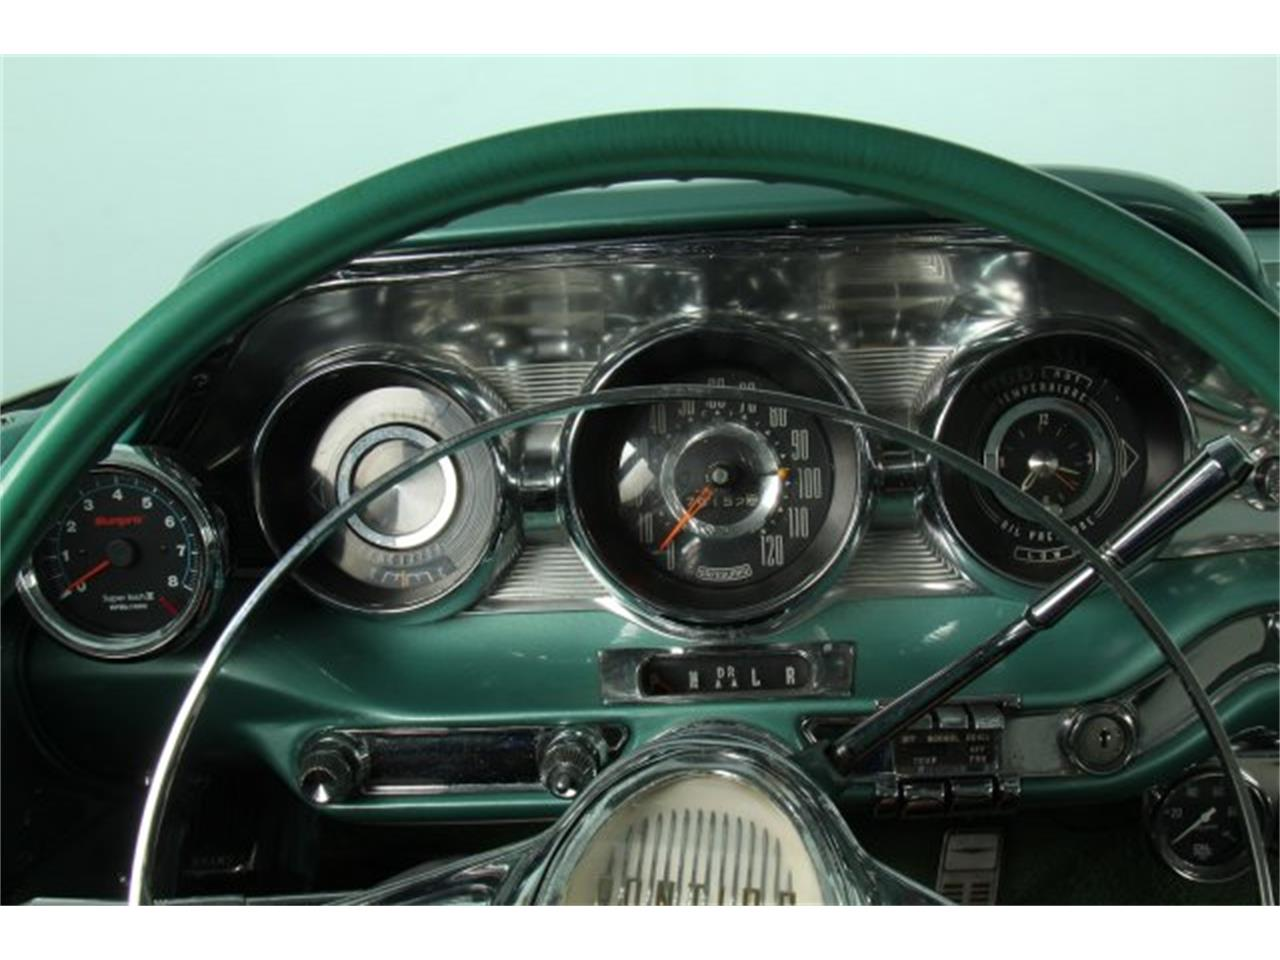 1959 Pontiac Bonneville for sale in Elyria, OH – photo 11